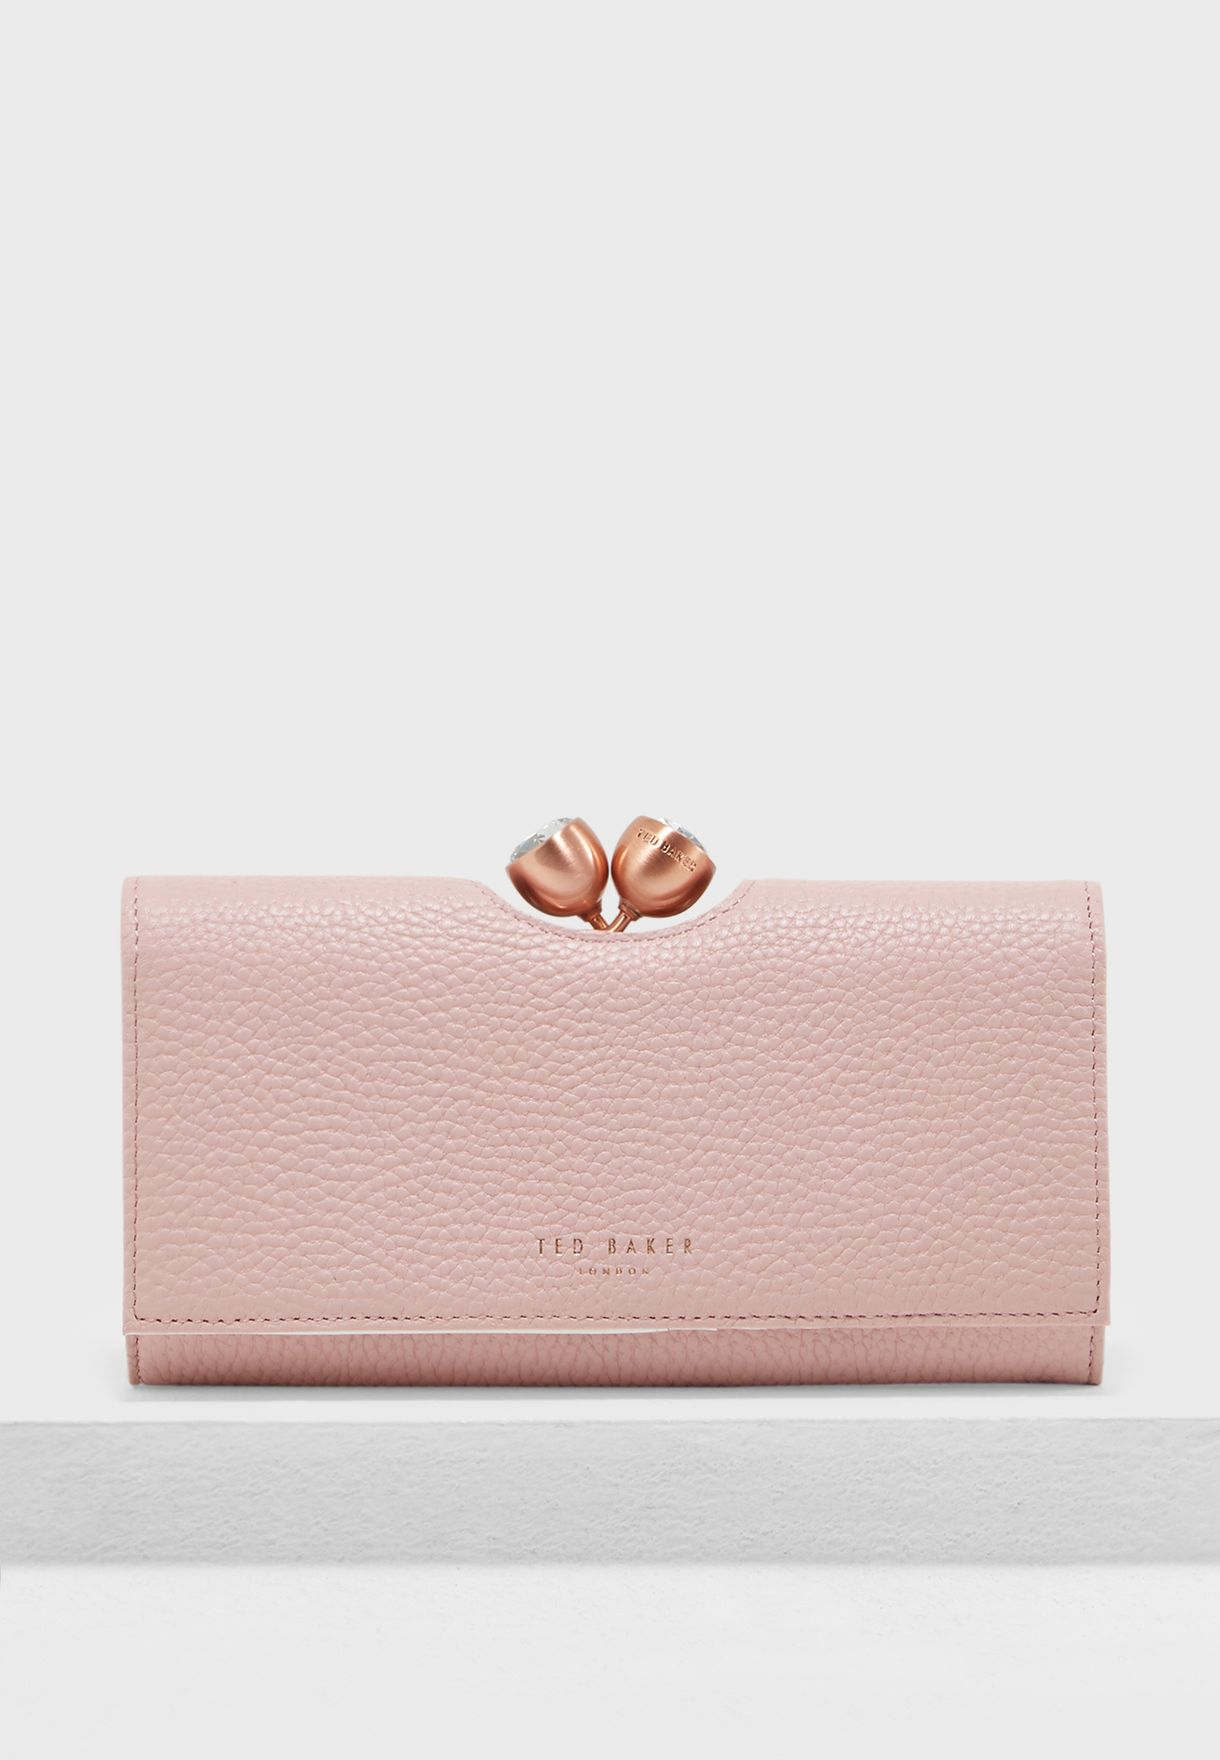 45c59a4bbee Shop Ted baker pink Textured Bobble Matinee Purse 145707 for Women ...